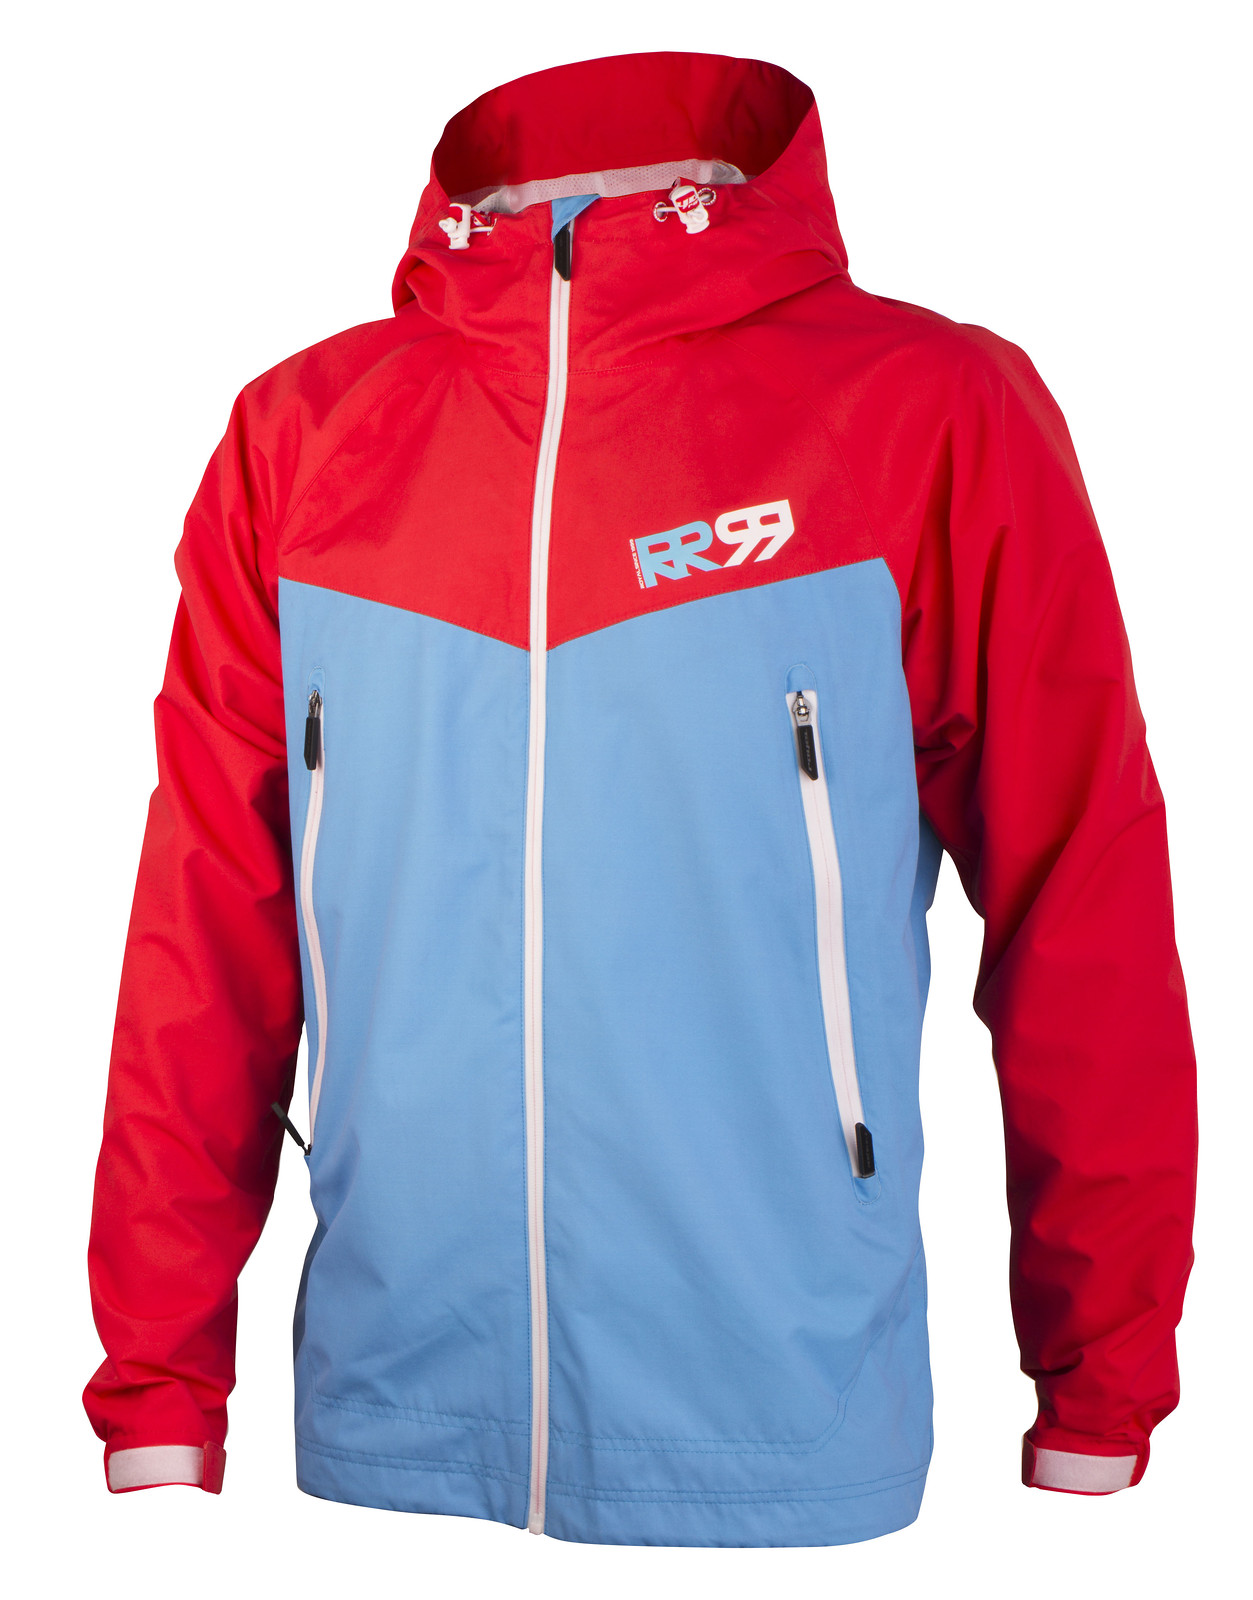 Royal_Racing_Matrix_Jacket_2017_RED_BLUE_WHITE